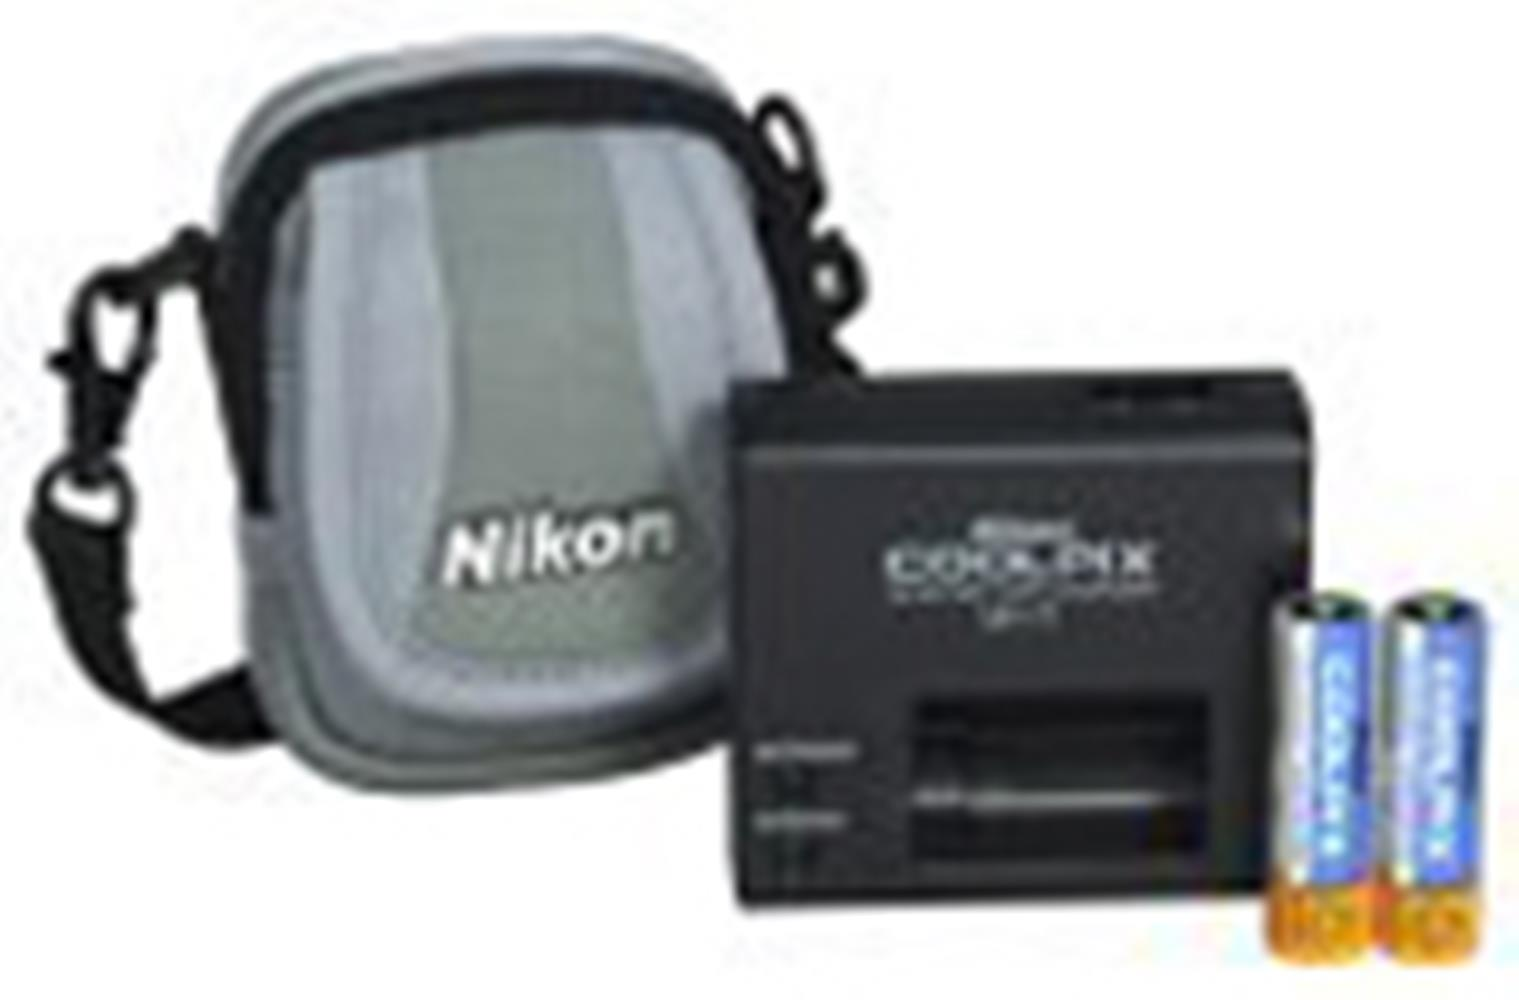 NIKON MH-71 AA BATTERY CHARGER UNIT